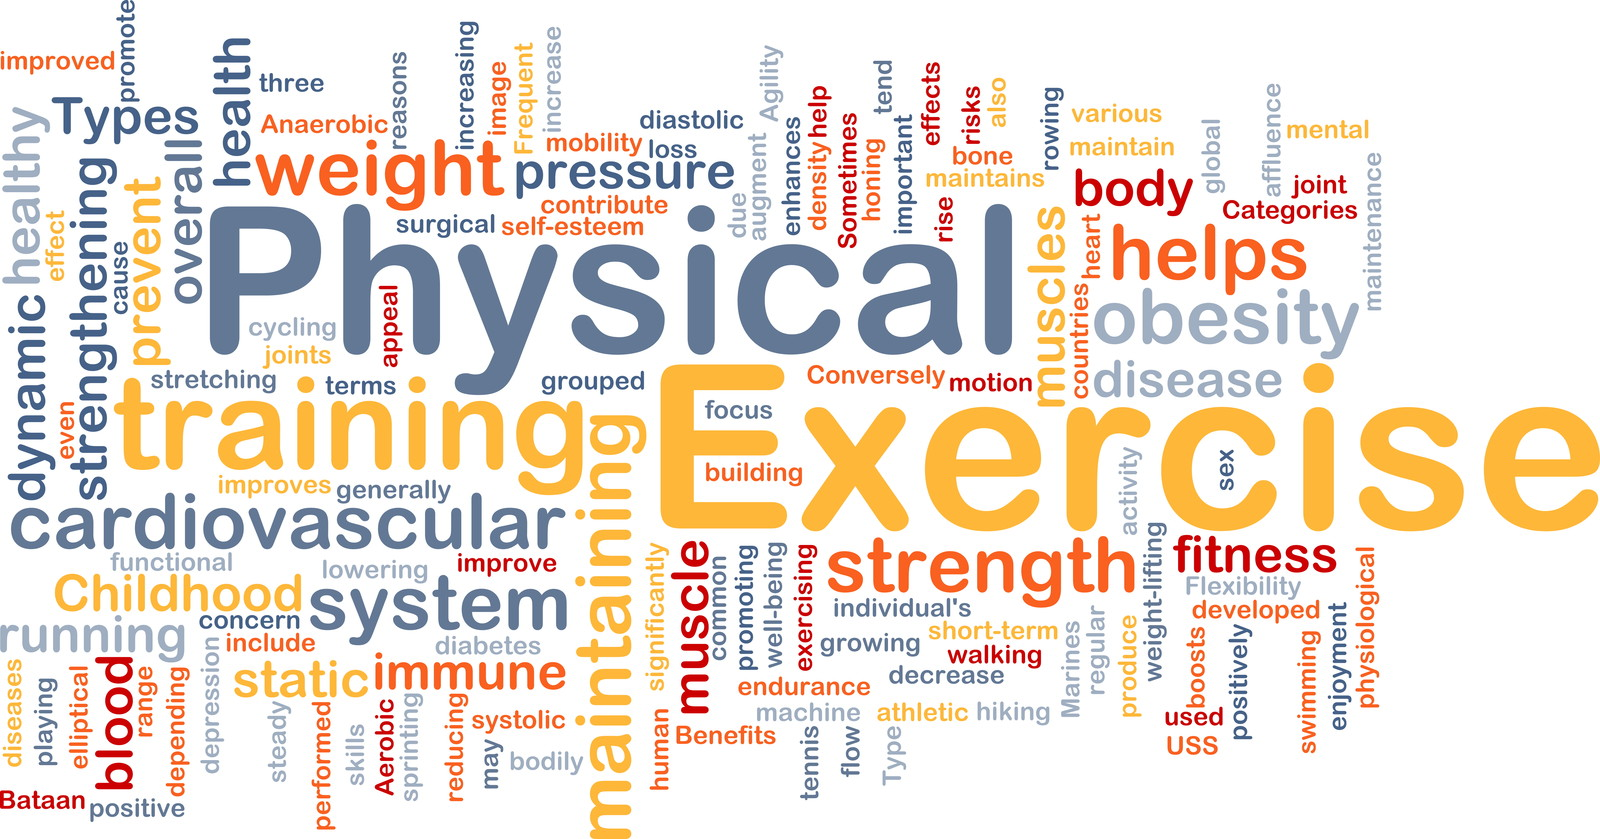 011 Essay Example Call Doctor Benefits Of Physical Fitness On Regular Impressive Exercise In 200 Words For Class 4 Hindi Full